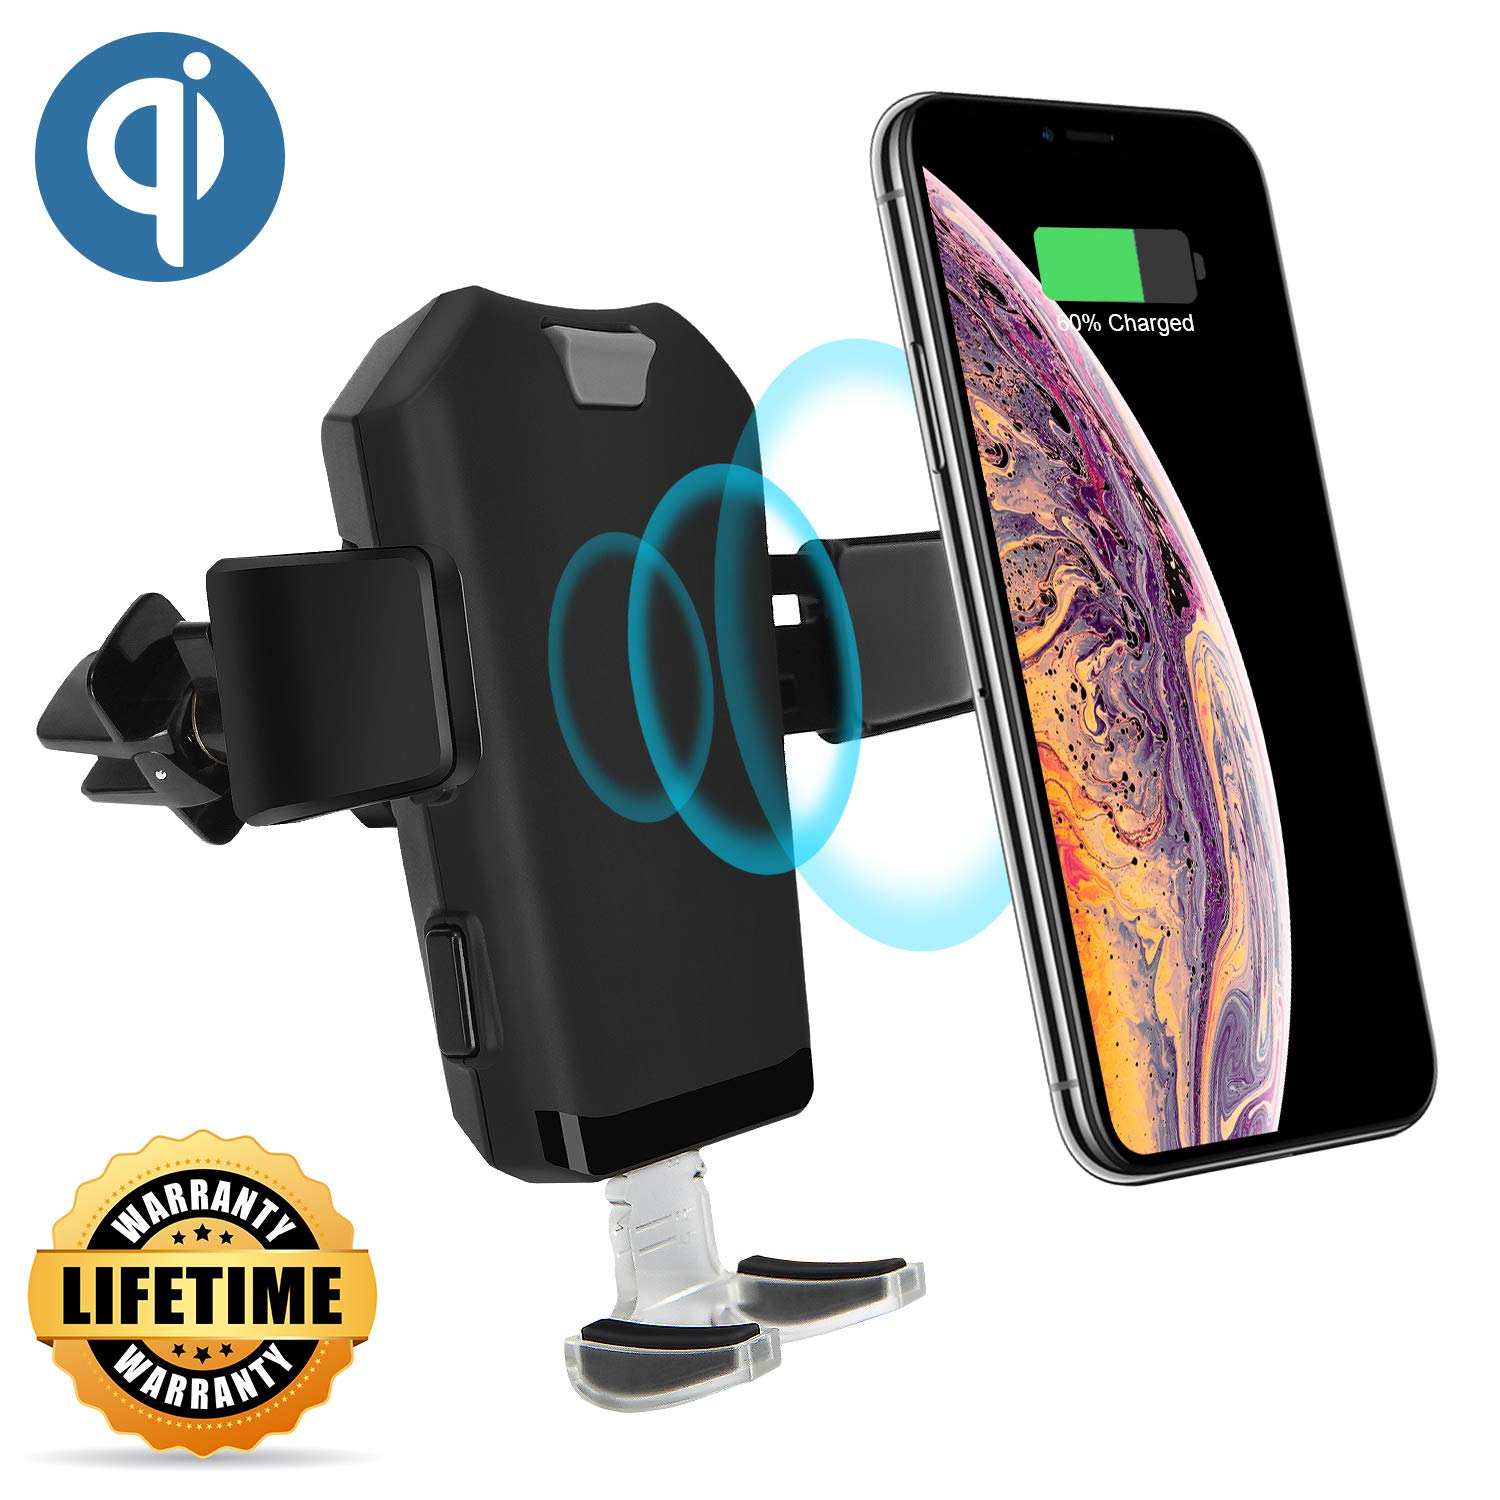 Automatic Clamping Mount with Air Vent Phone Holder Compatible iPhone X//Xs//Xs Max//8//8 Plus CUGear 10W Qi Fast Wireless Car Charger Samsung Galaxy Note 9// S9// S9+// S8// S8 and All Qi Enabled Phones 4351663879